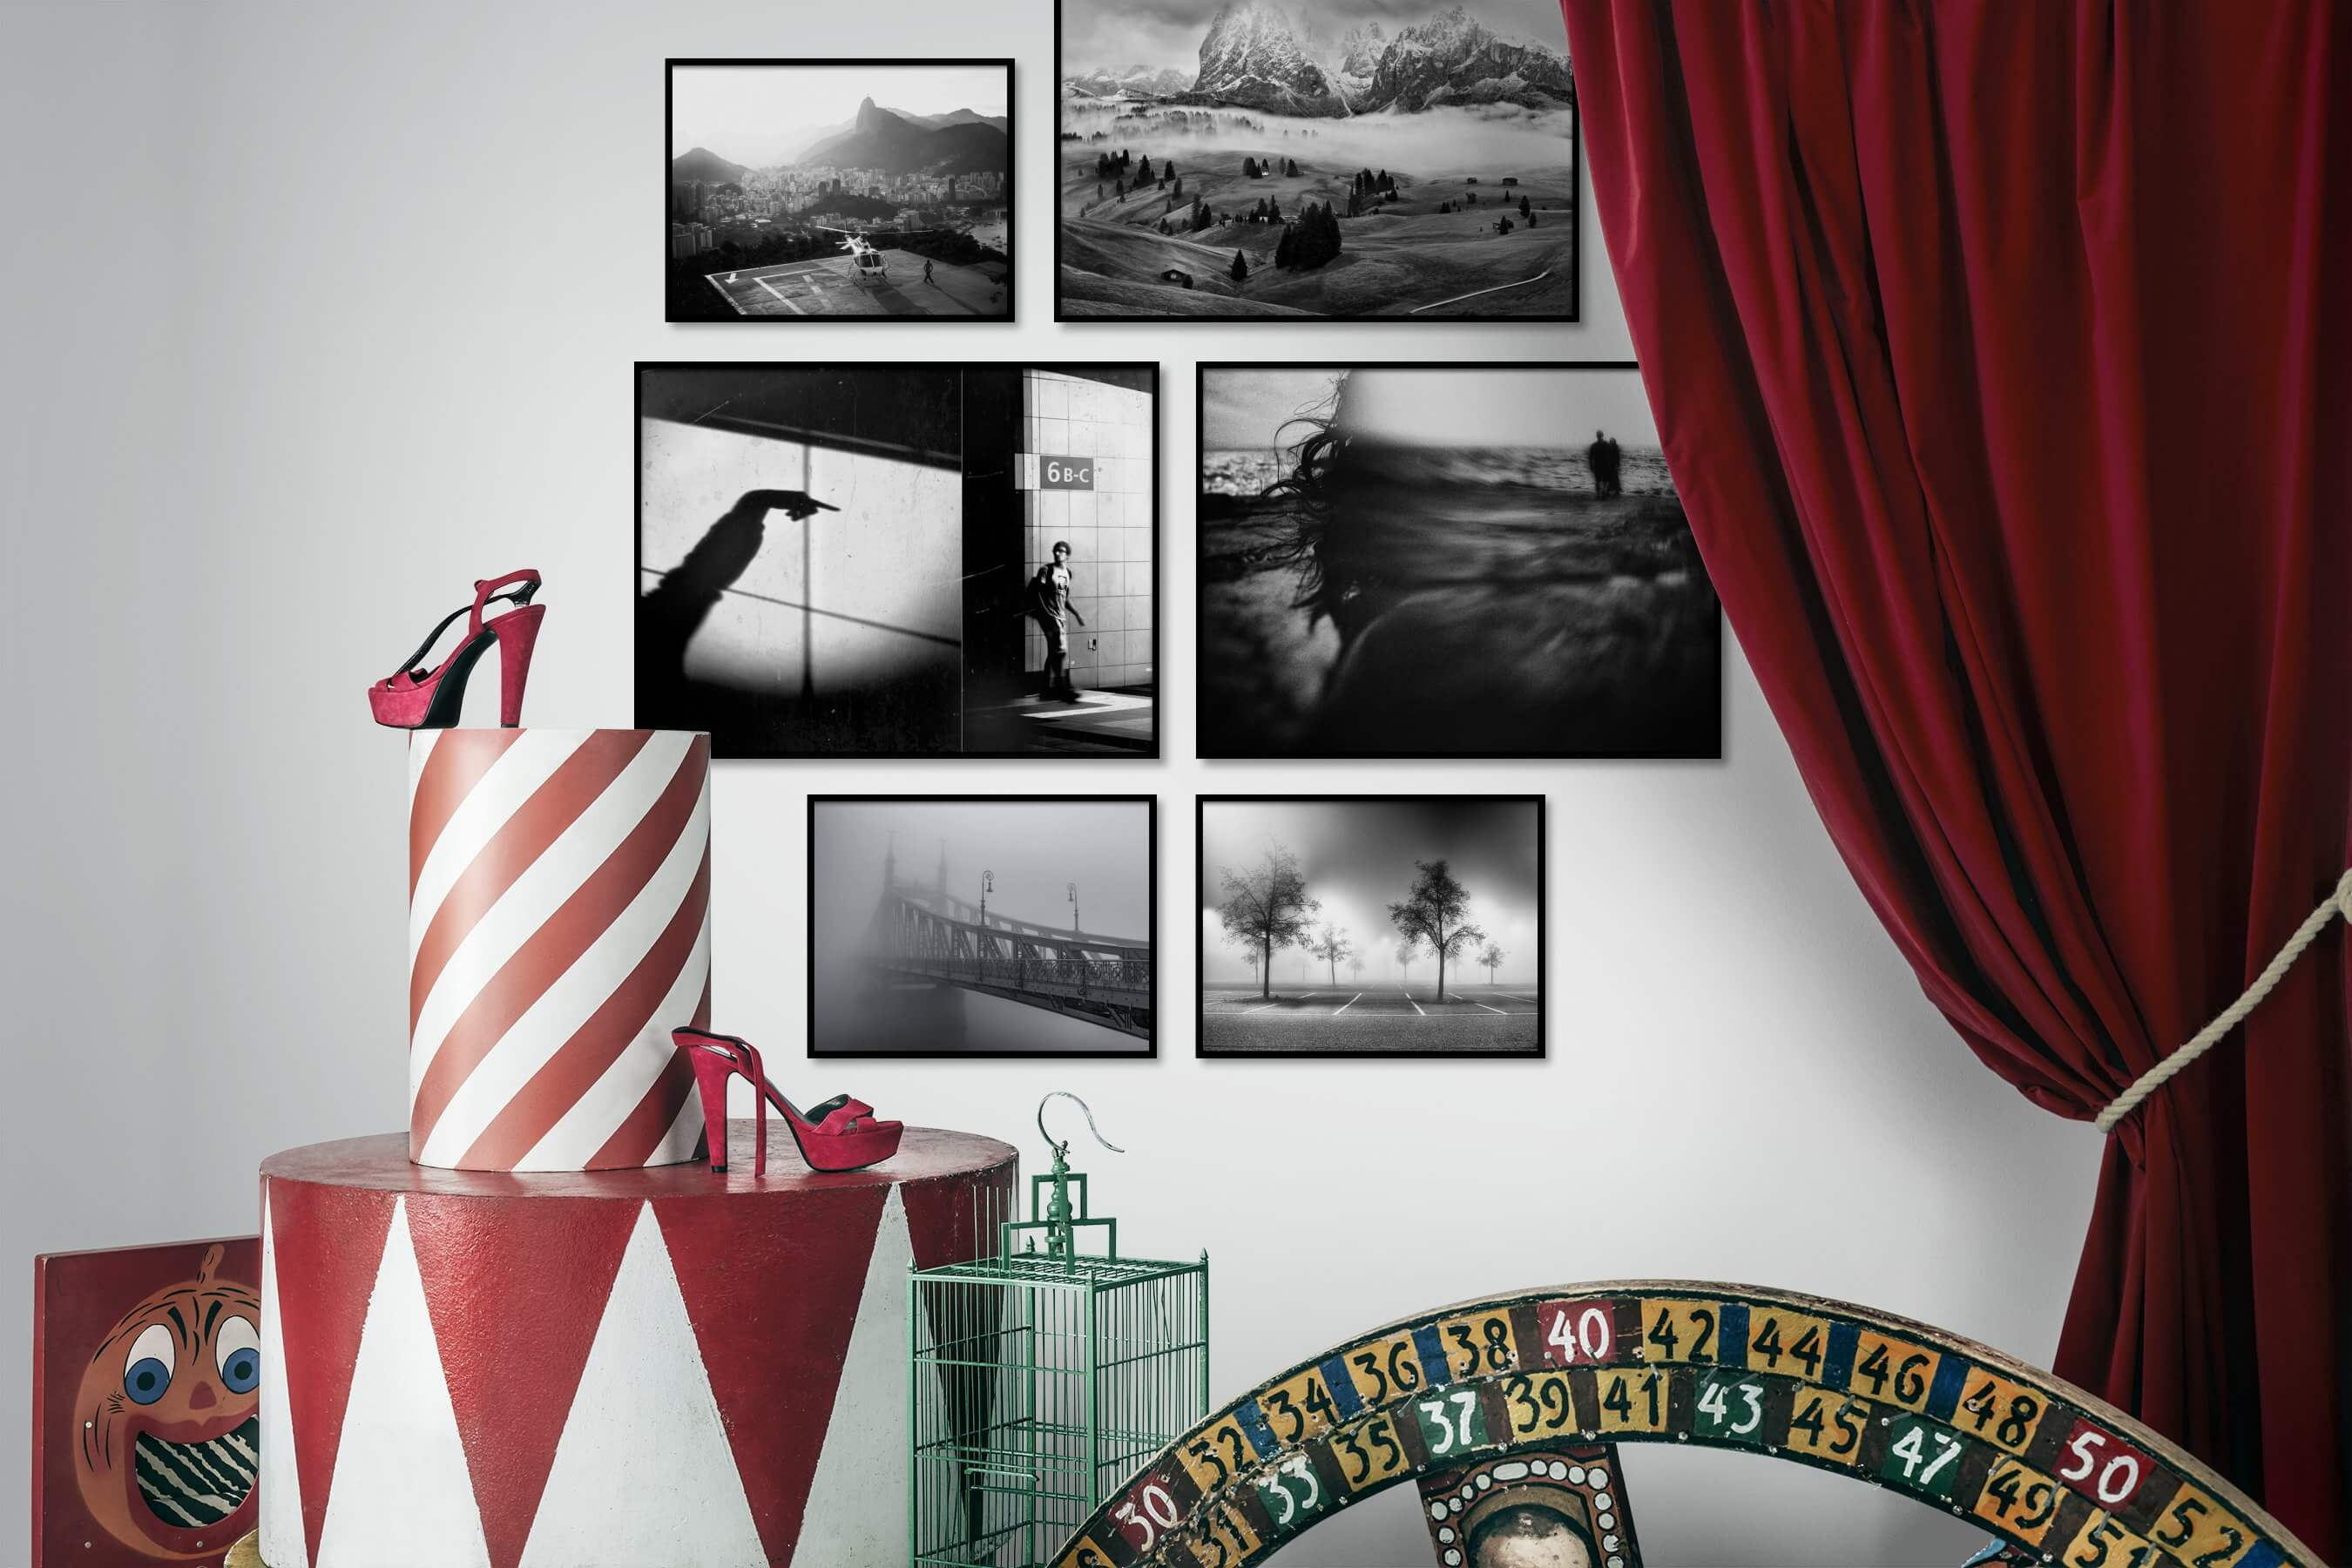 Gallery wall idea with six framed pictures arranged on a wall depicting Black & White, City Life, Nature, Artsy, and For the Moderate